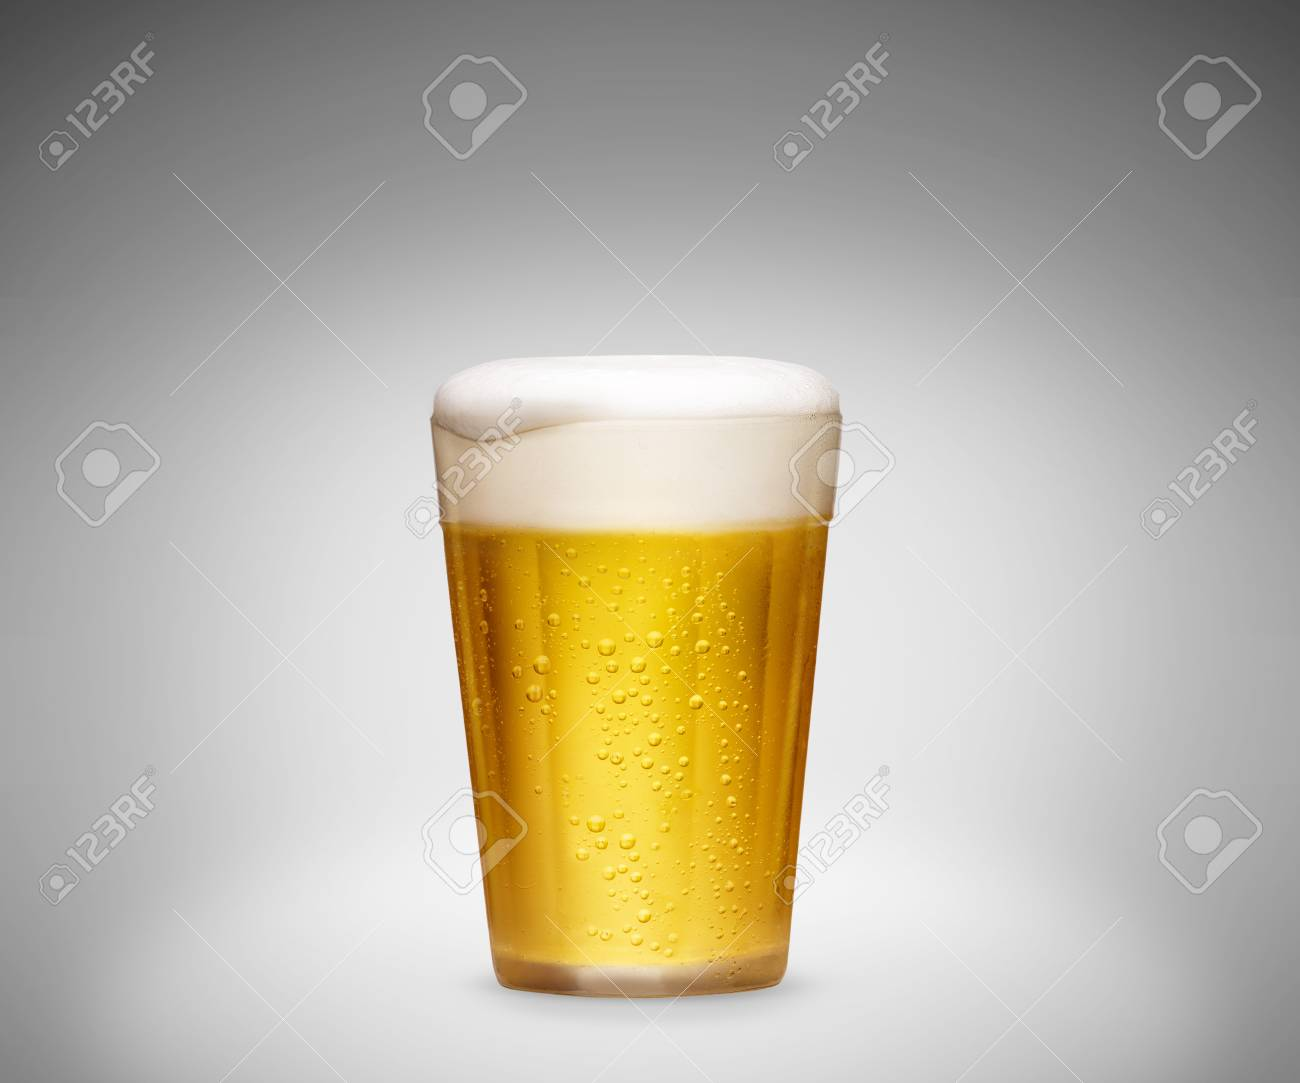 Glass of cold beer - 49967300